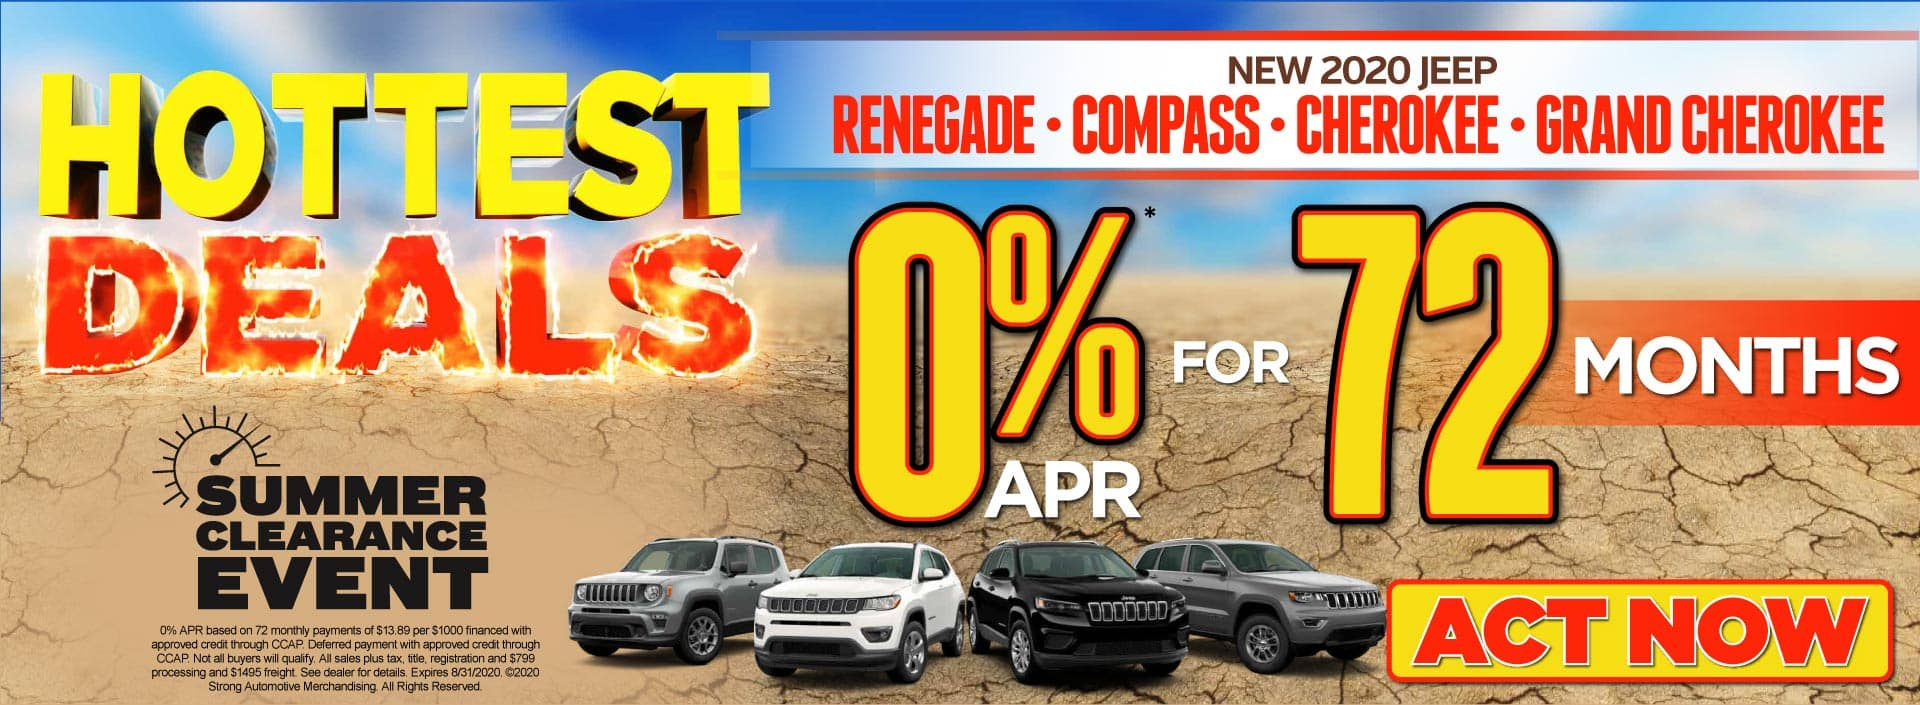 0% APR for 72 months* - Click to View Inventory